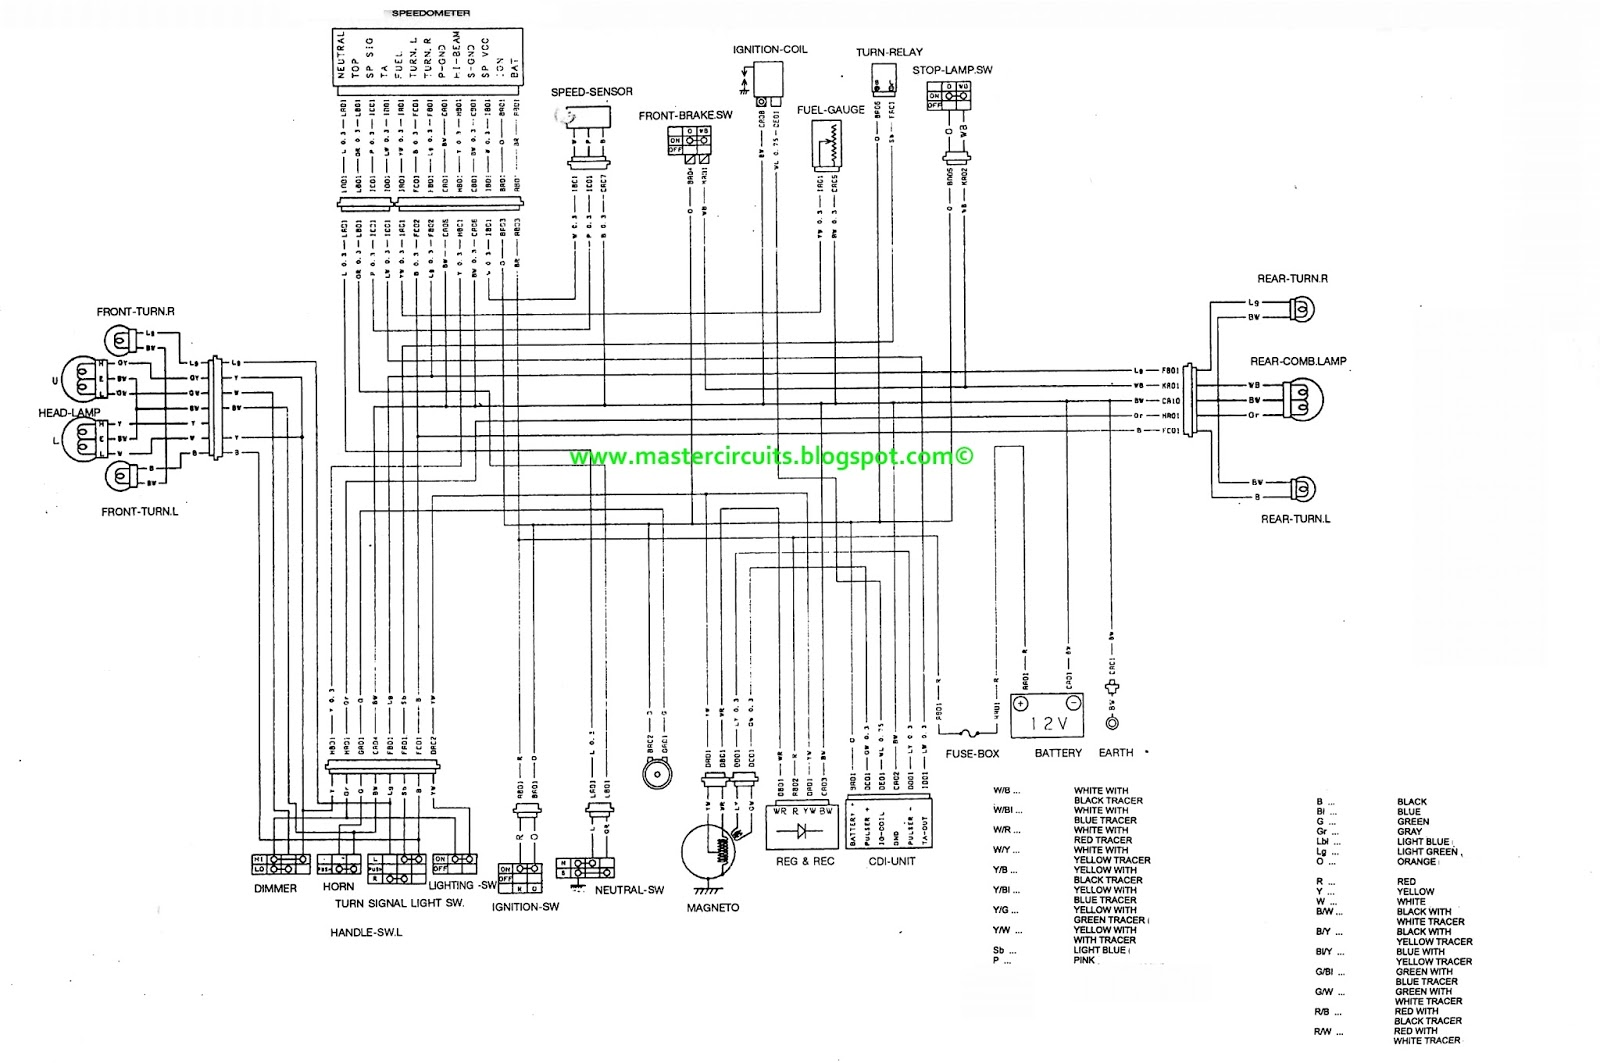 yamaha raider wiring diagram yamaha raider wiring diagram